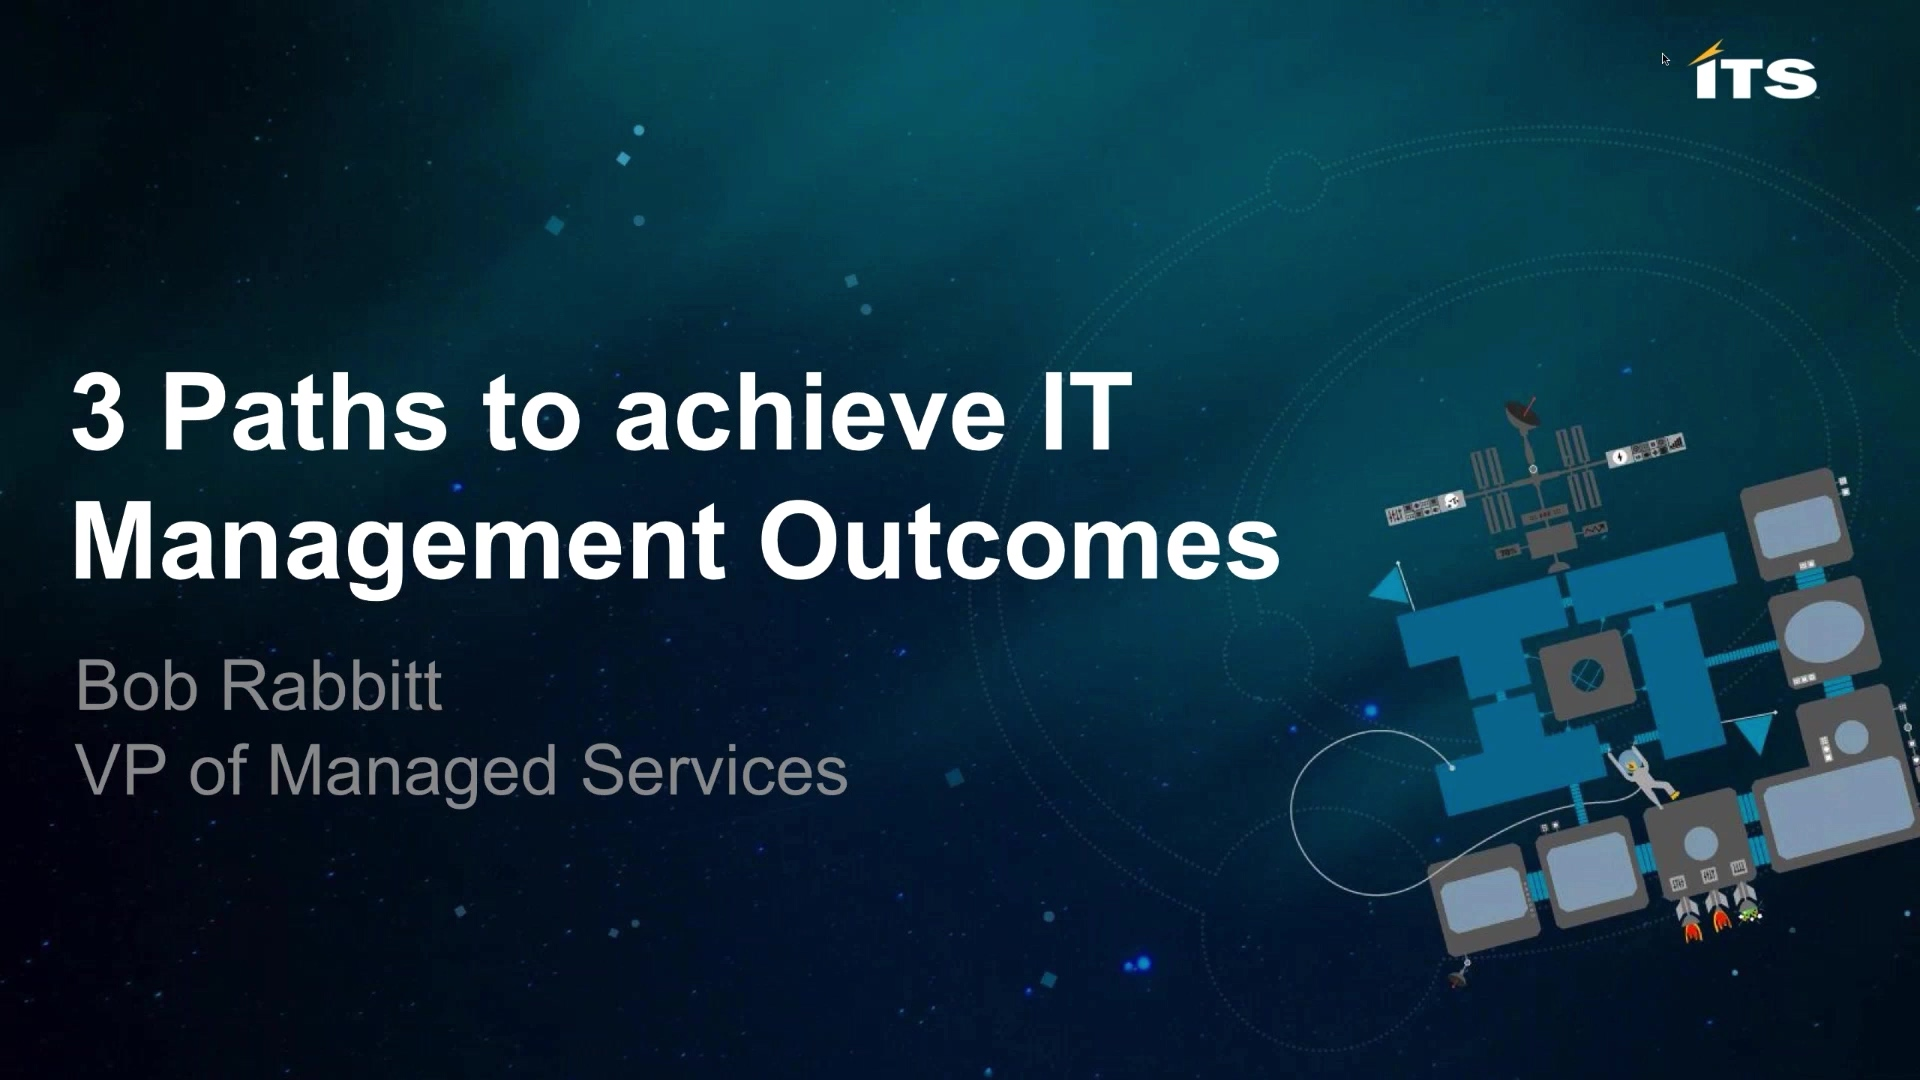 Achieving the IT Management outcomes you desire